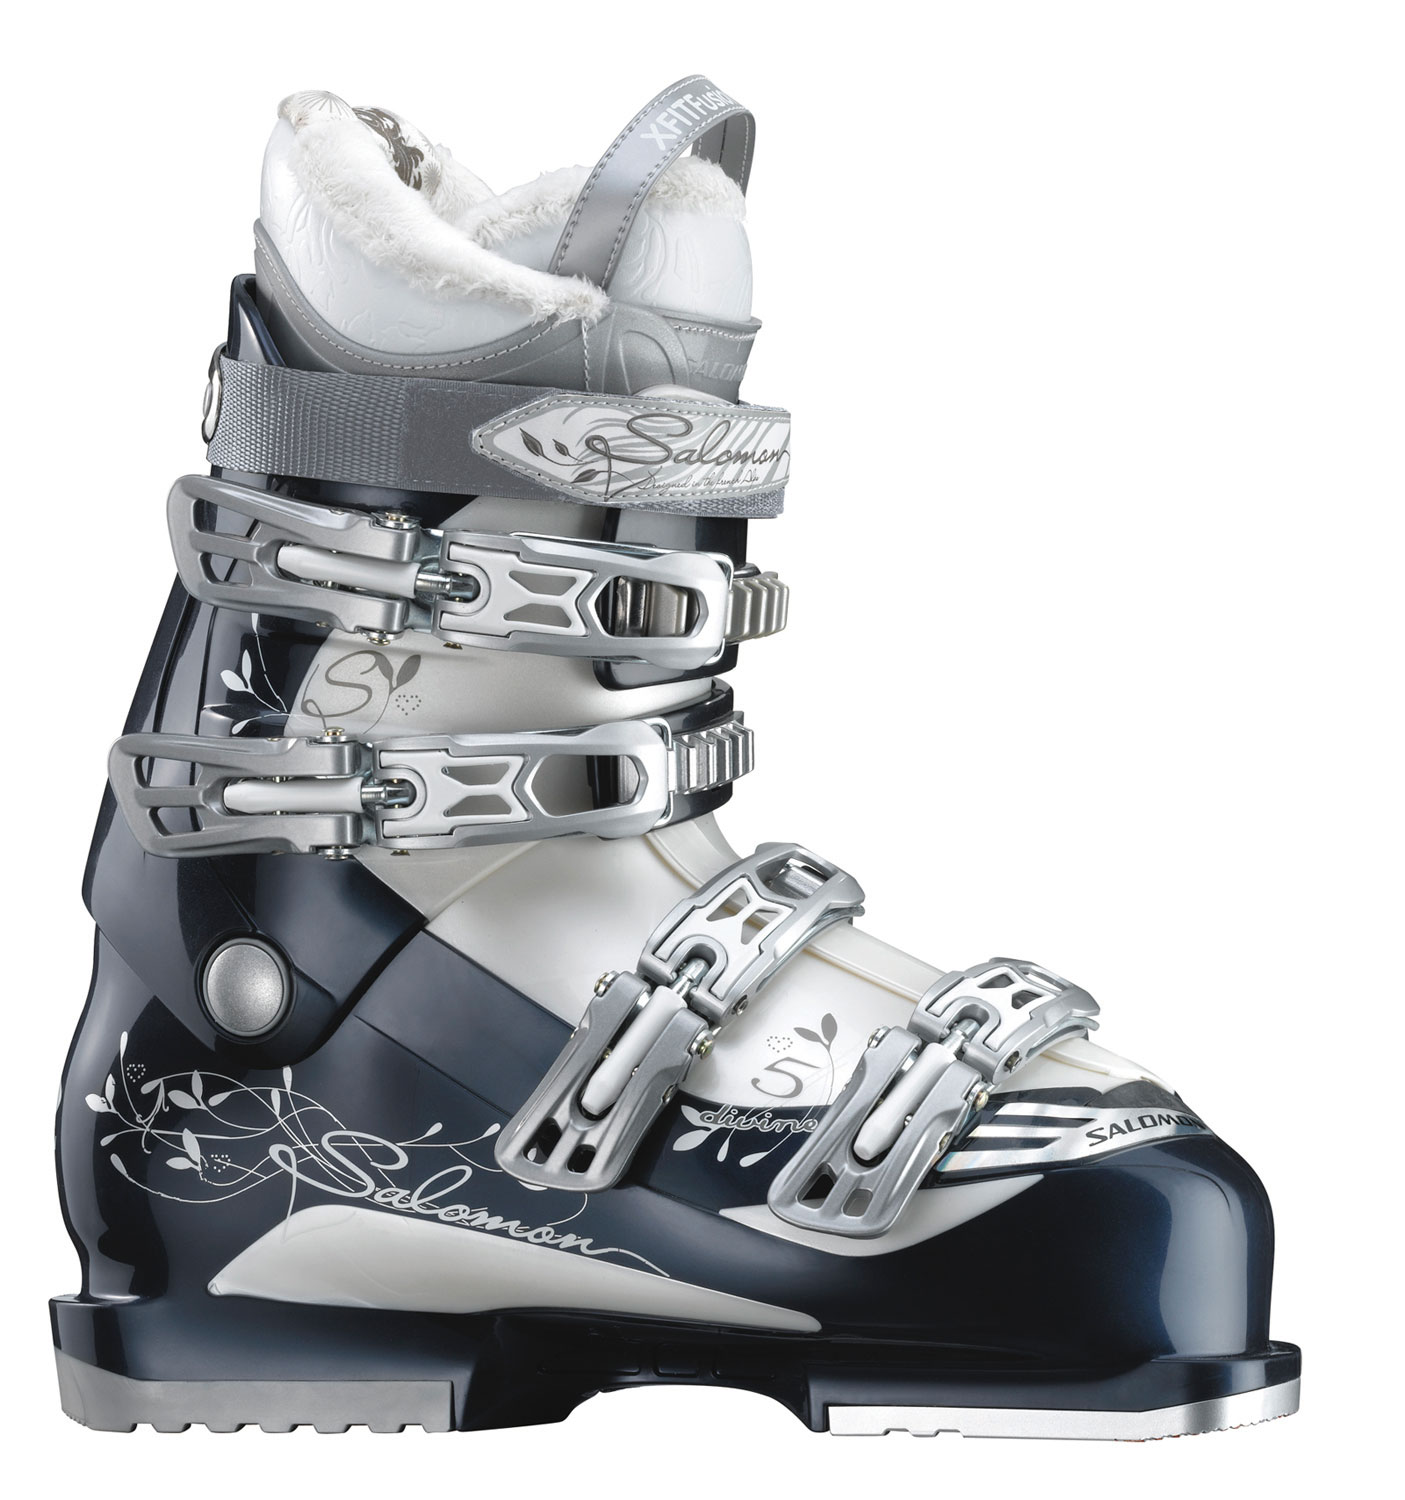 Ski Specially designed with removable toe and heel din pads, as well as  offering tool-free adjustments, the Salomon Divine 5 Ski Boots Shadow / White Pearl are the perfect women's ski boots for the serious skier. Unparalleled in performance and comfort, the interior is designed with luxurious faux fur. For convenience, the tongue has a loop. Like all Salmon Divine products, the durability is impressive, and when you own Salmon Divine ski boots, you never have to worry about sacrificing performance for comfort.Key Features of The Salomon Divine 5 Women's Ski Boots:  4 Mirco Alu / Place Buckle  XFit Fusion Active Liner  Faux Fur  Loop on Tongue  Tool Free Catch Adjustments  BI Material PP Shell and Cuff  3D Senifit  Heel and Toe Removable Din Pads - $210.95